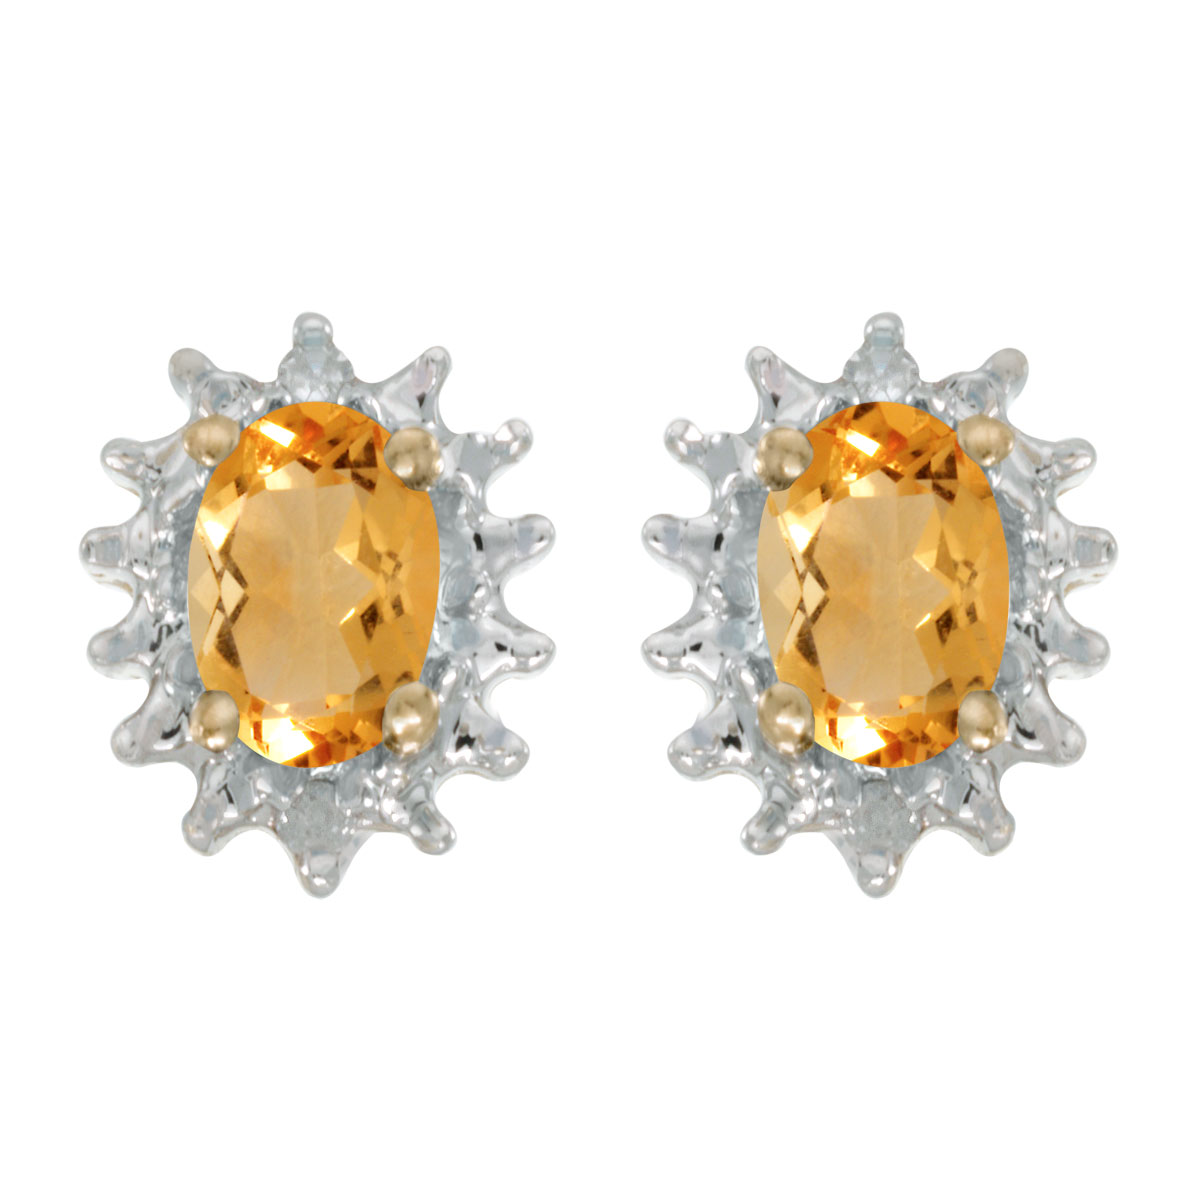 These 14k yellow gold oval citrine and diamond earrings feature 6x4 mm genuine natural citrines w...